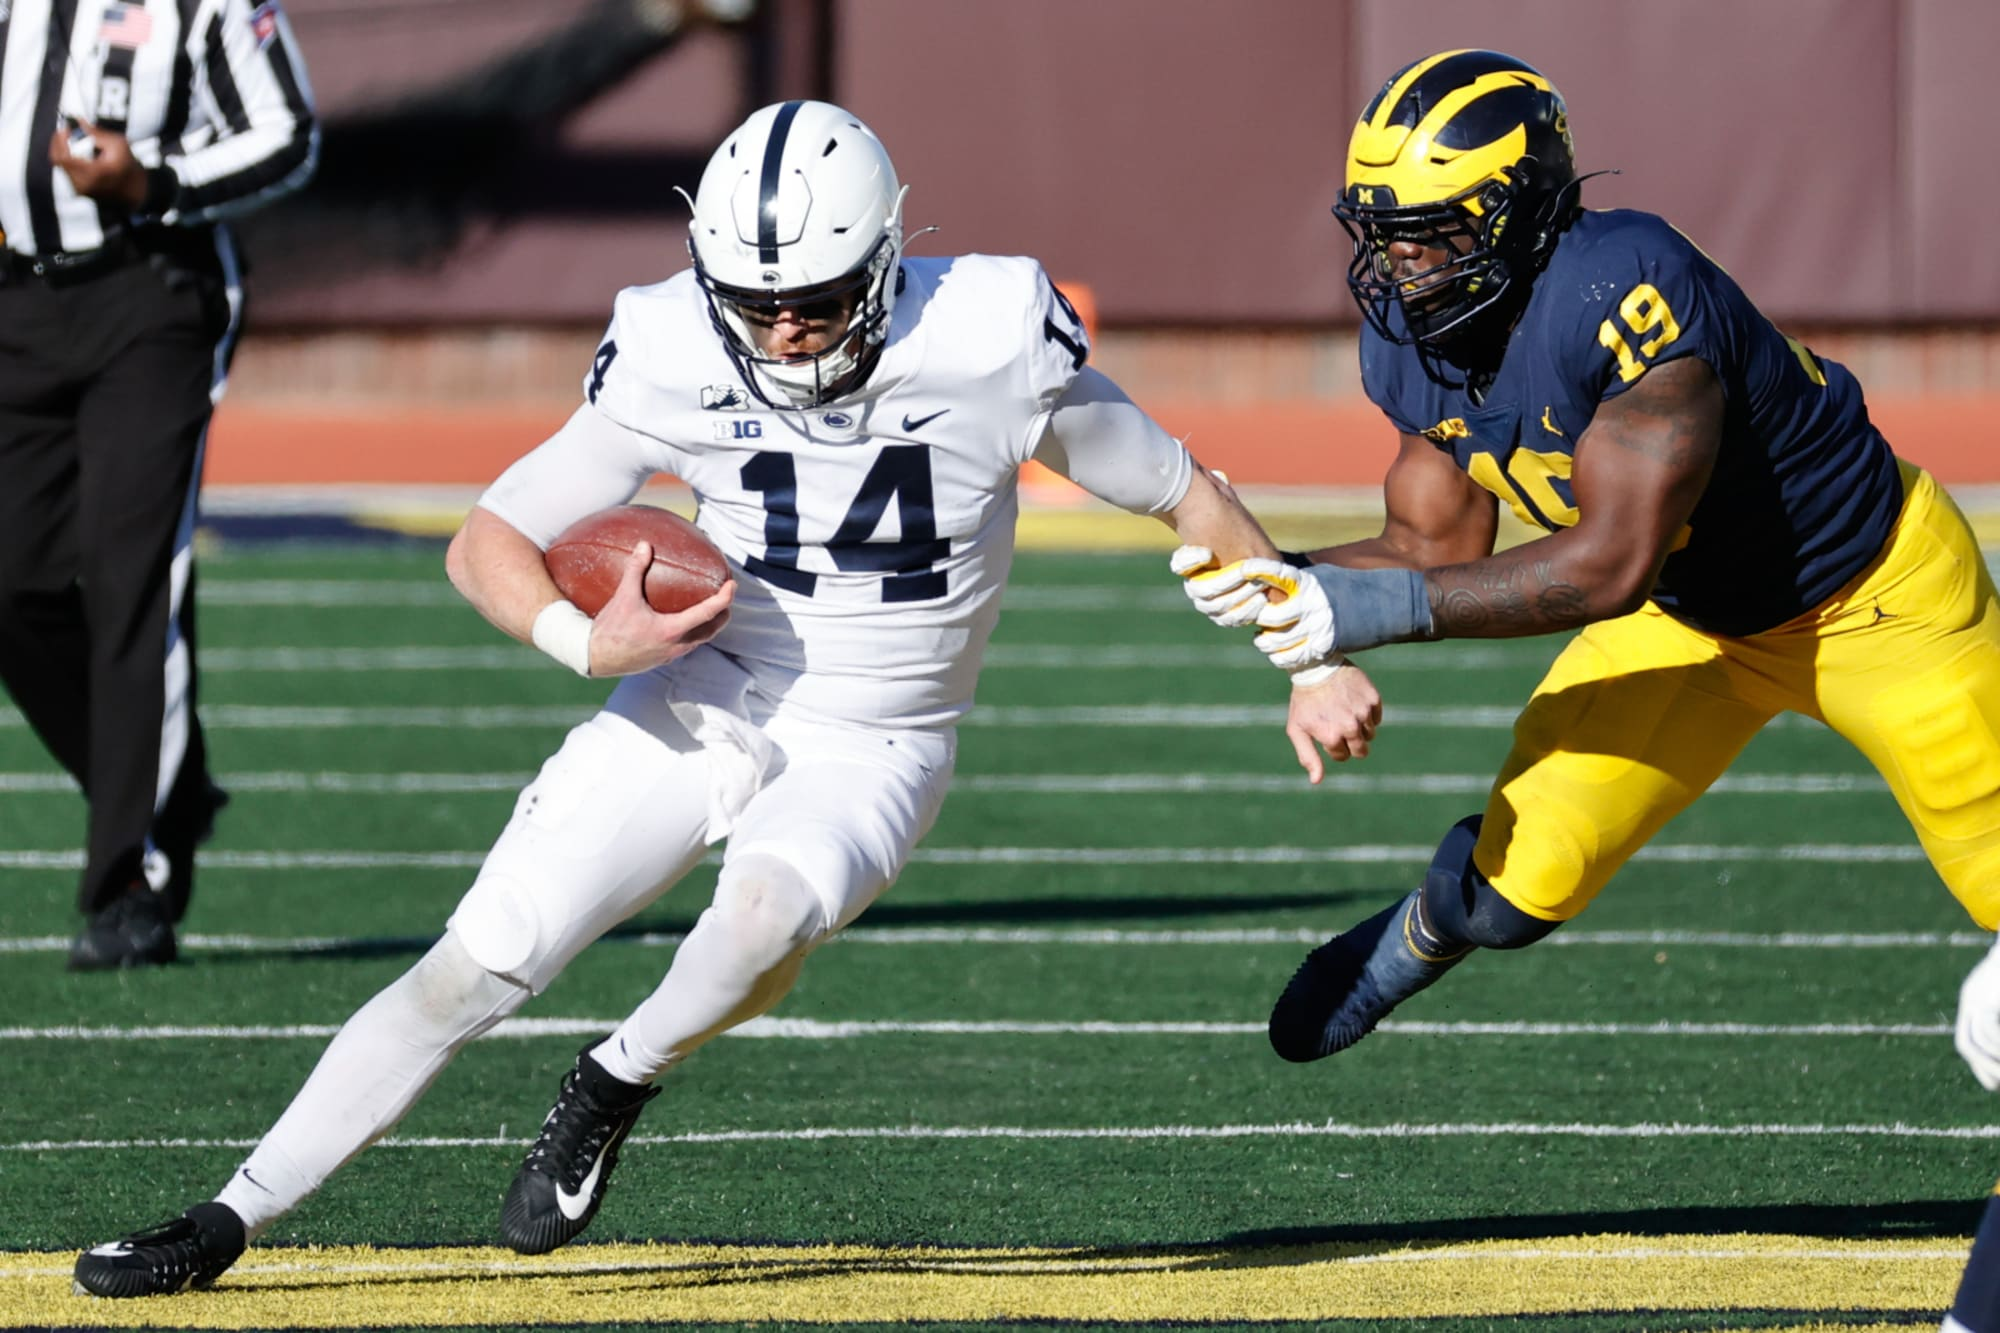 Michigan Football: Brief upswing ended abruptly by winless Penn State